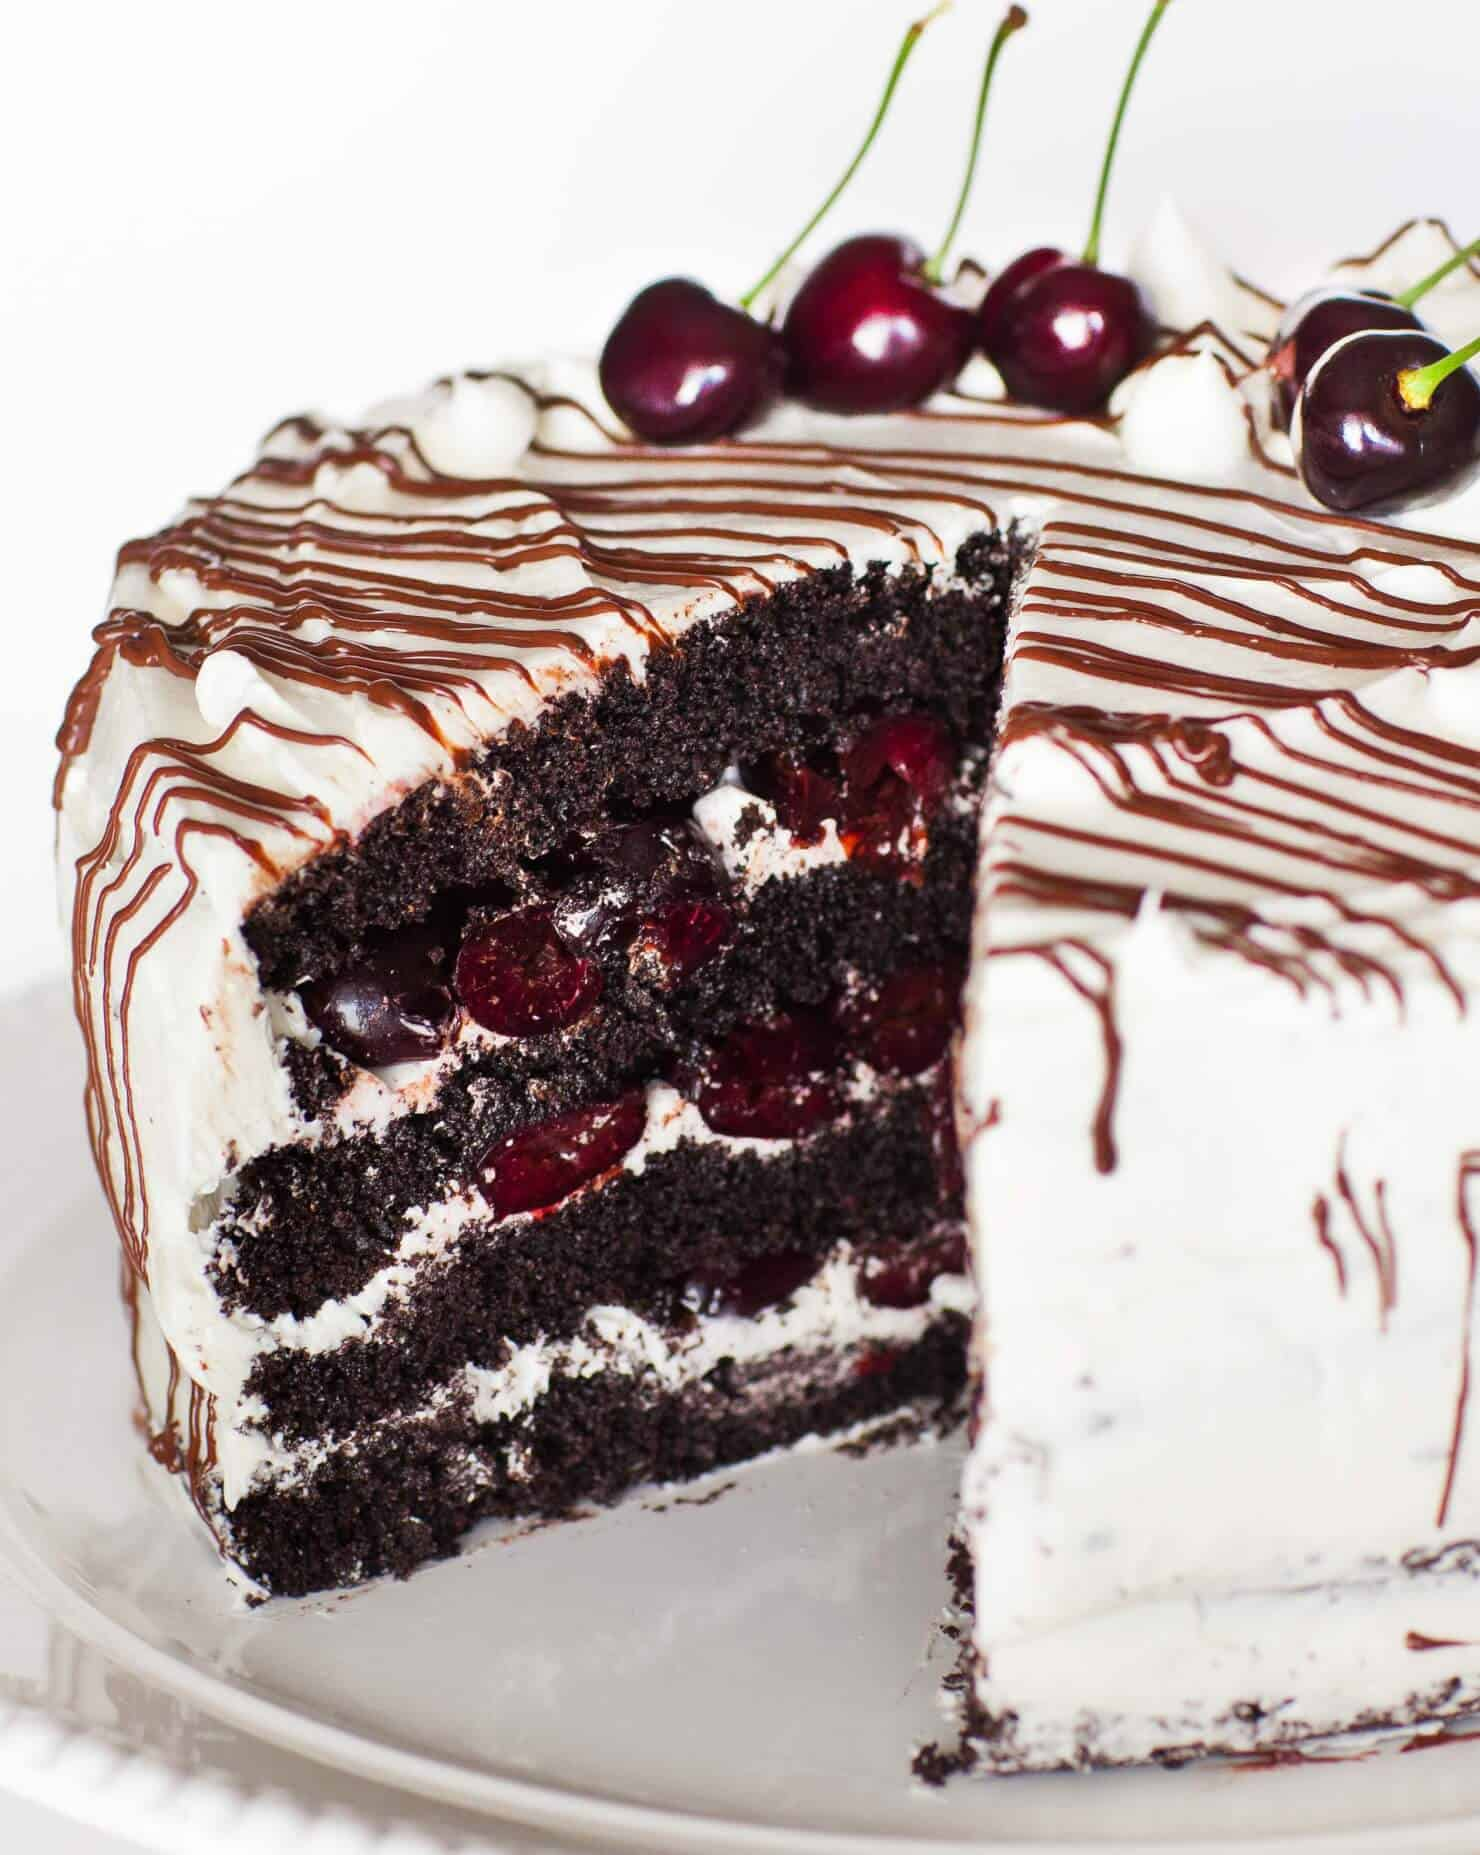 insdide chocolate cherry cake